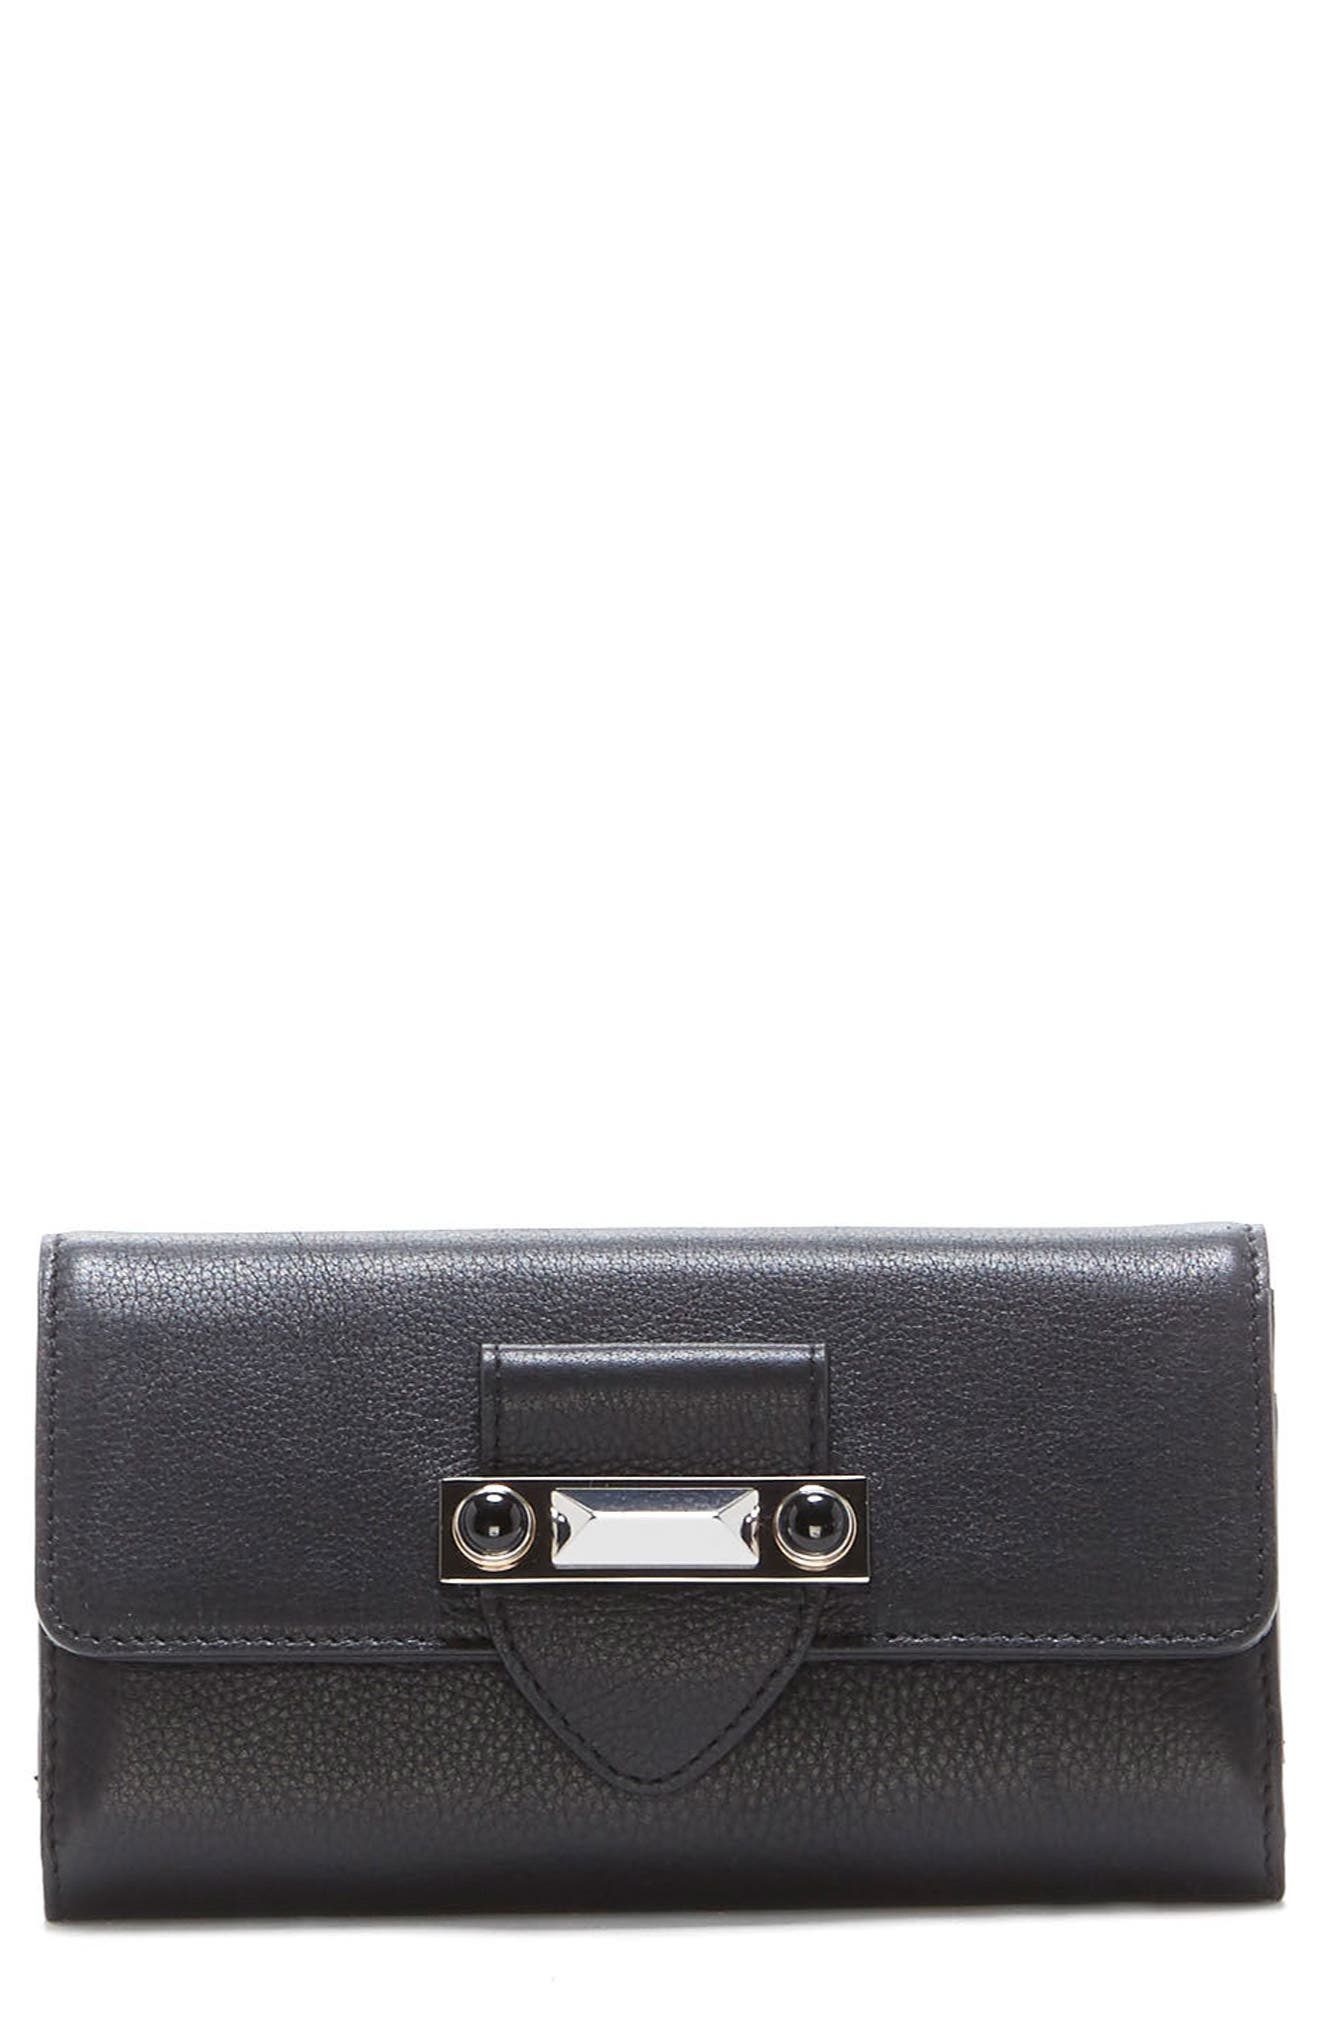 Main Image - Vince Camuto Bitty Leather Wallet